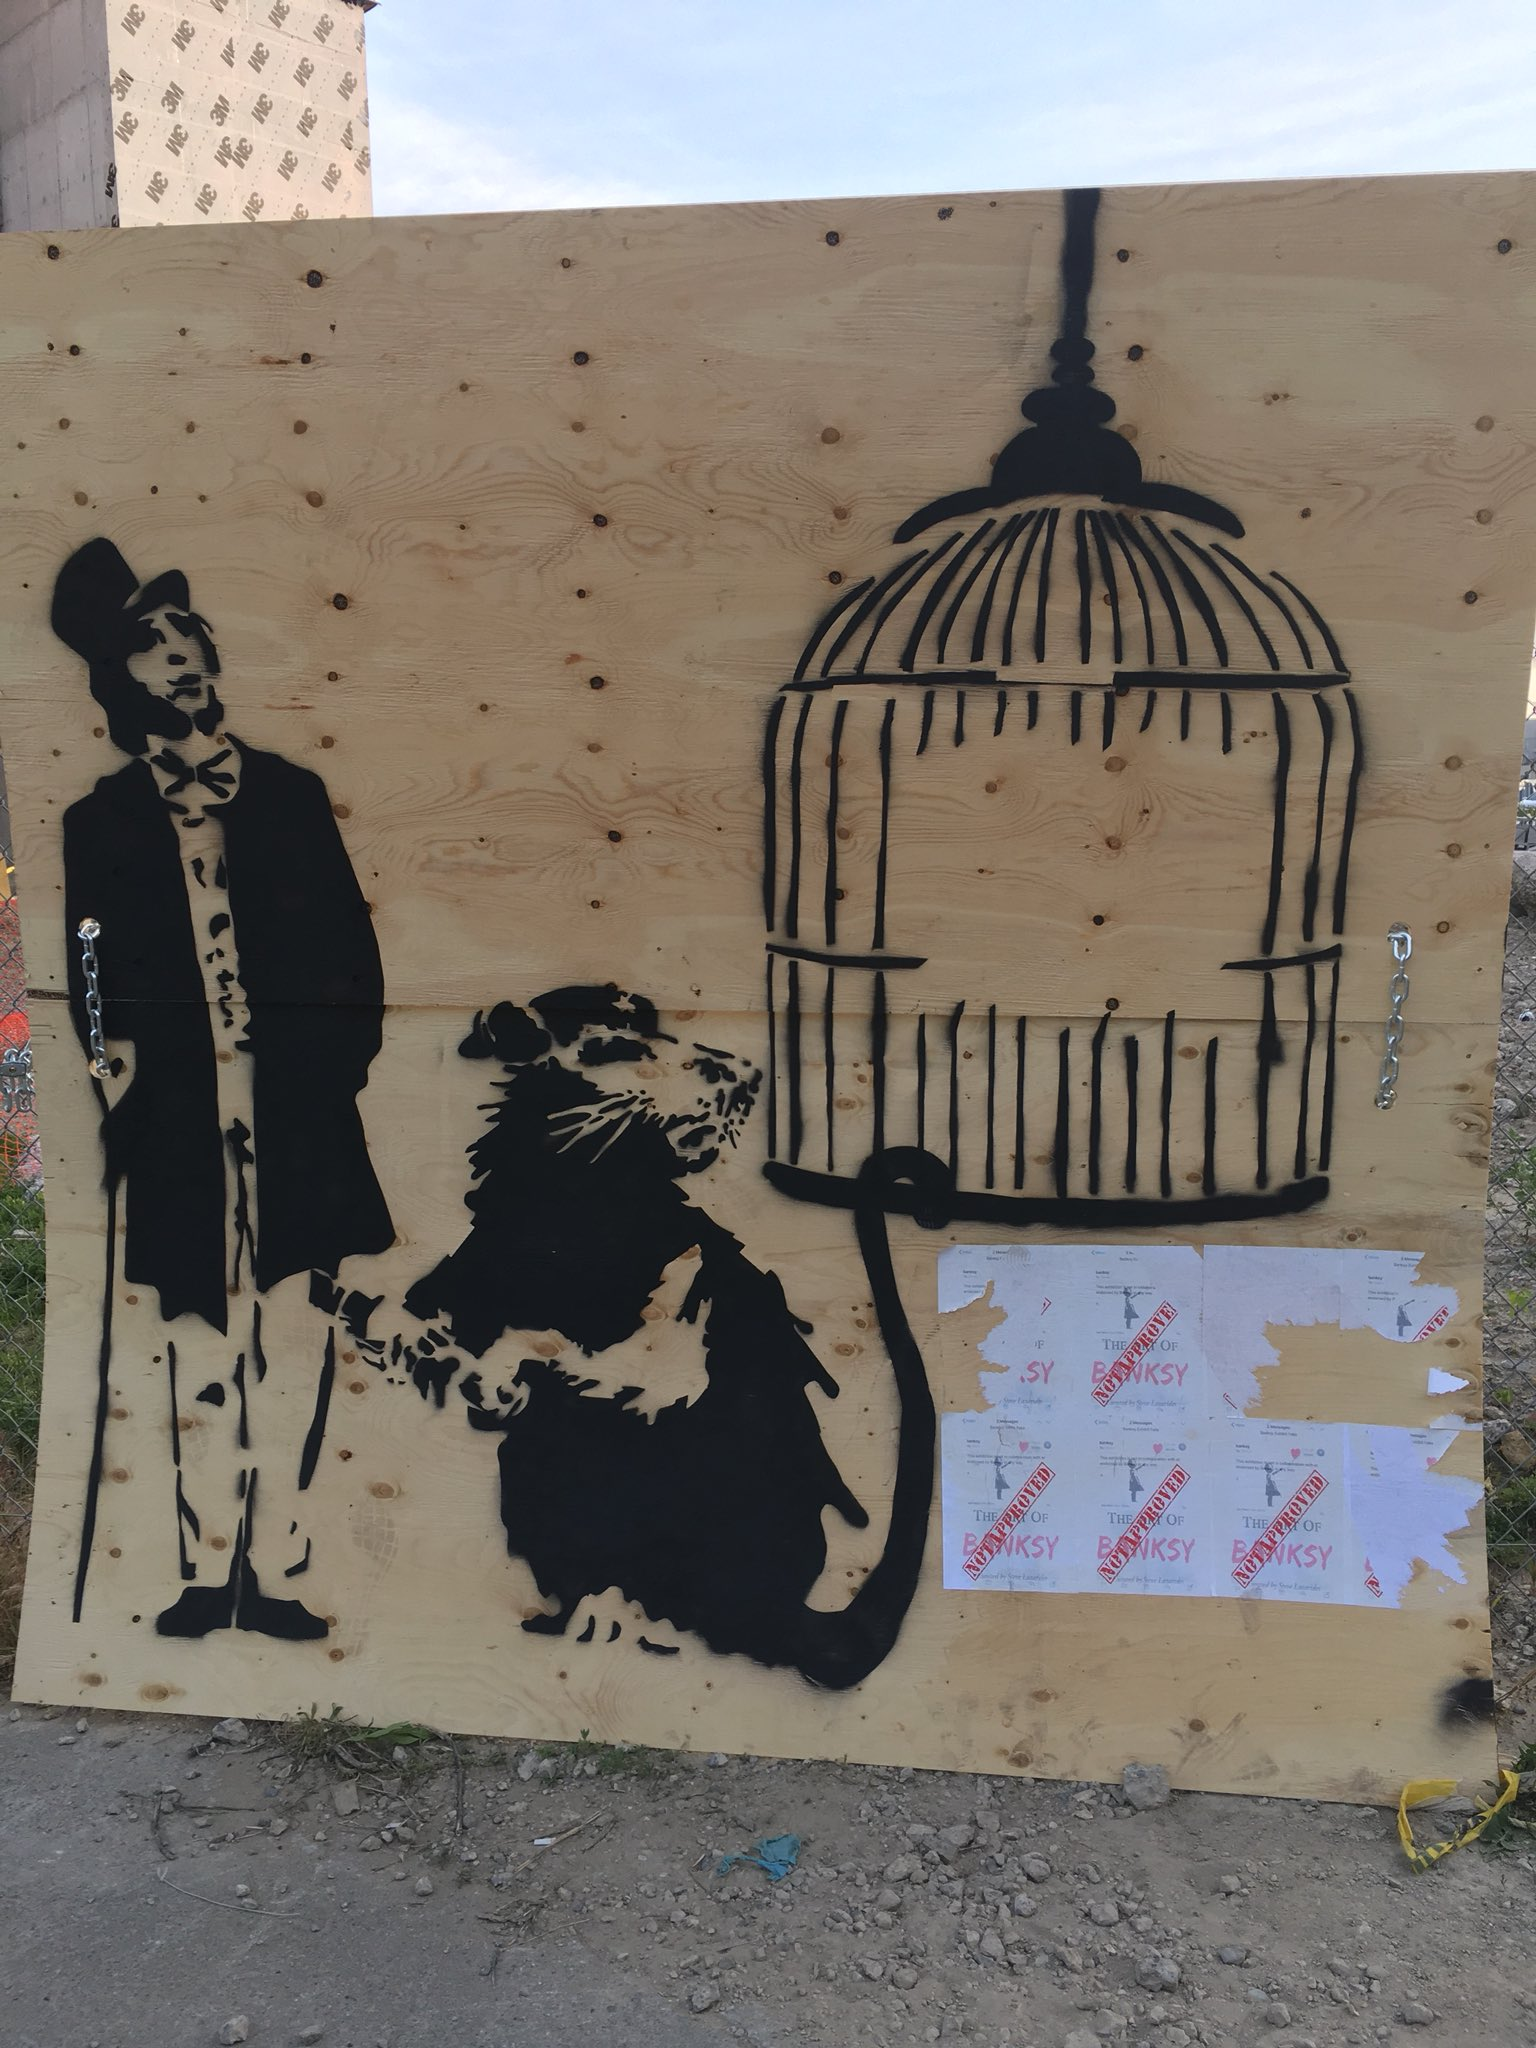 Real Banksy? #banksy #banksytoronto #cp24 #notapproved #toronto https://t.co/5iET8et6Ol